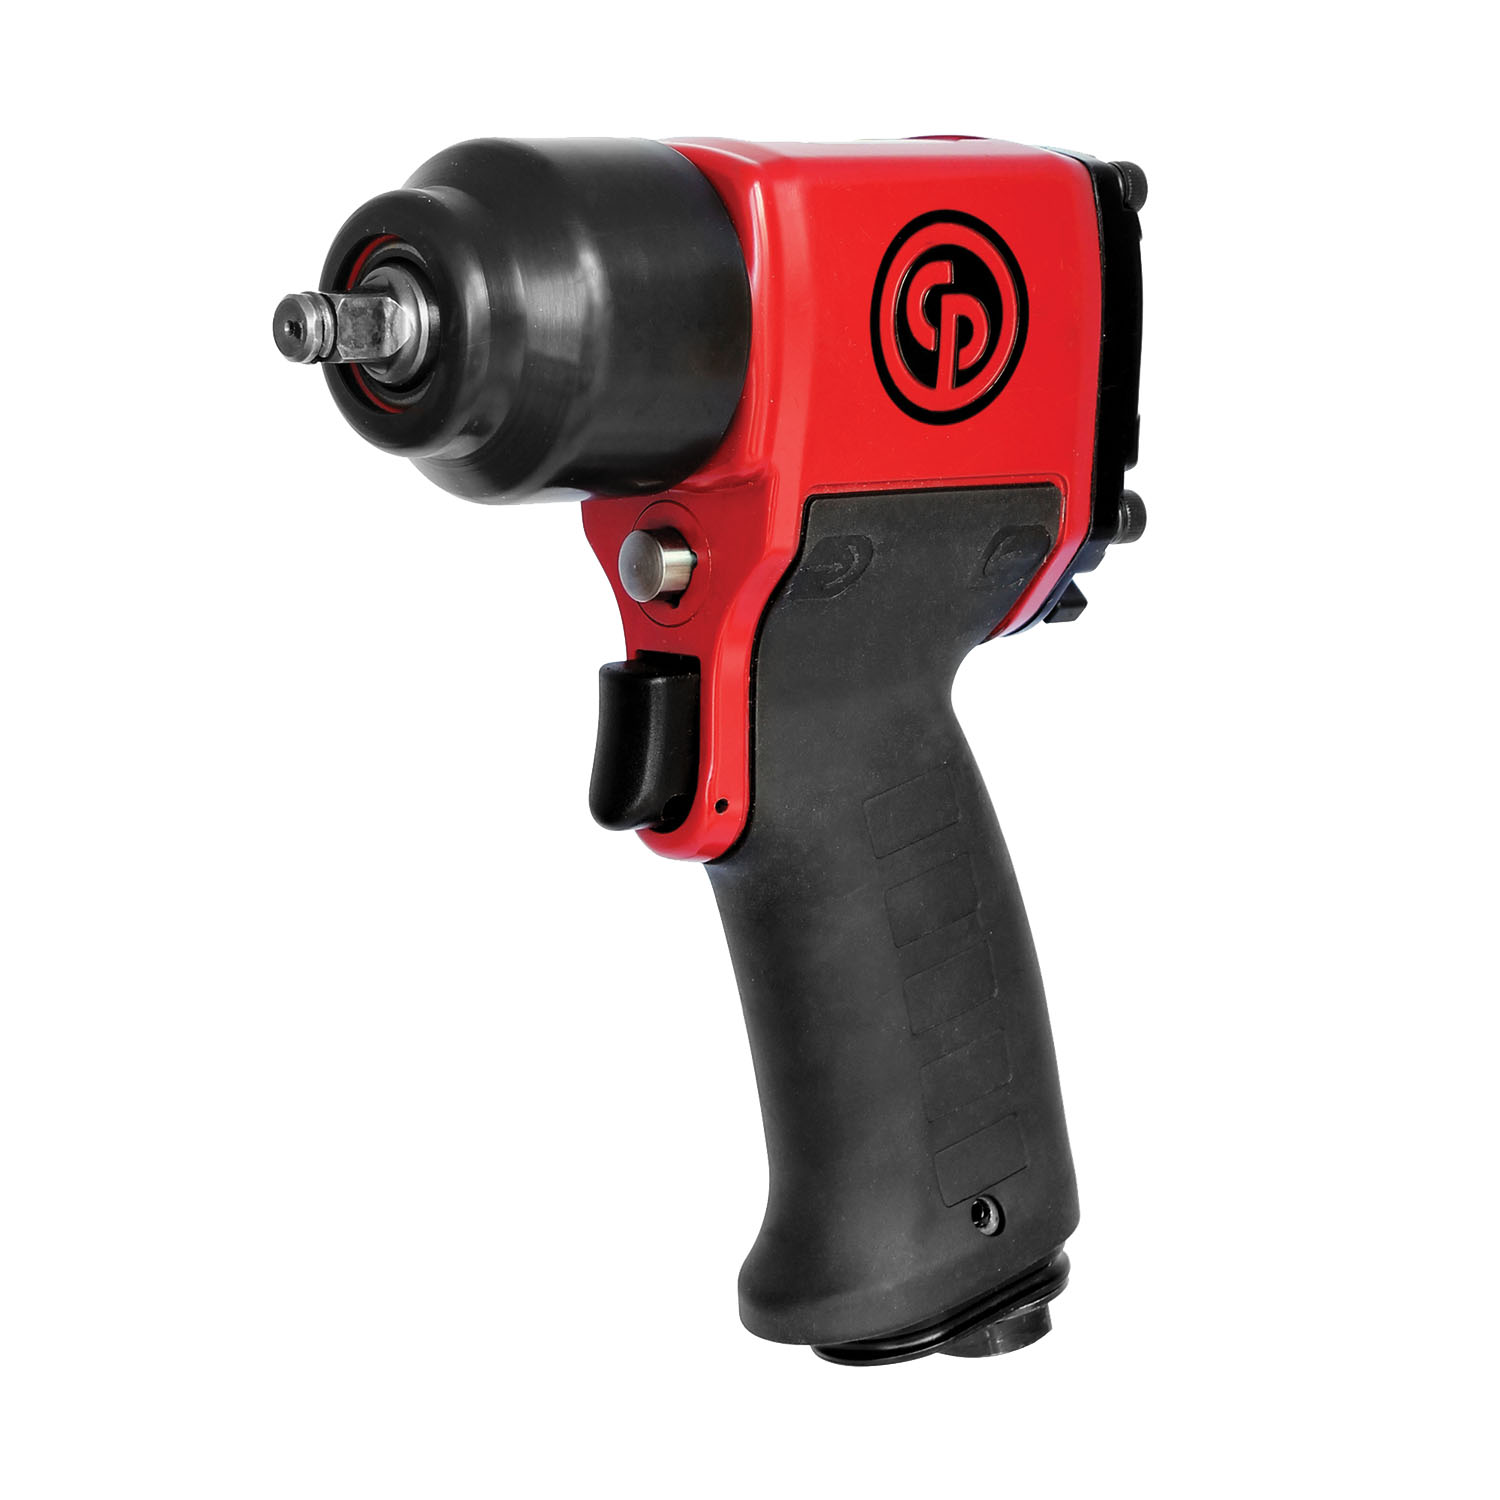 Chicago Pneumatic Extra Heavy-Duty Impact Wrench, 3/8""